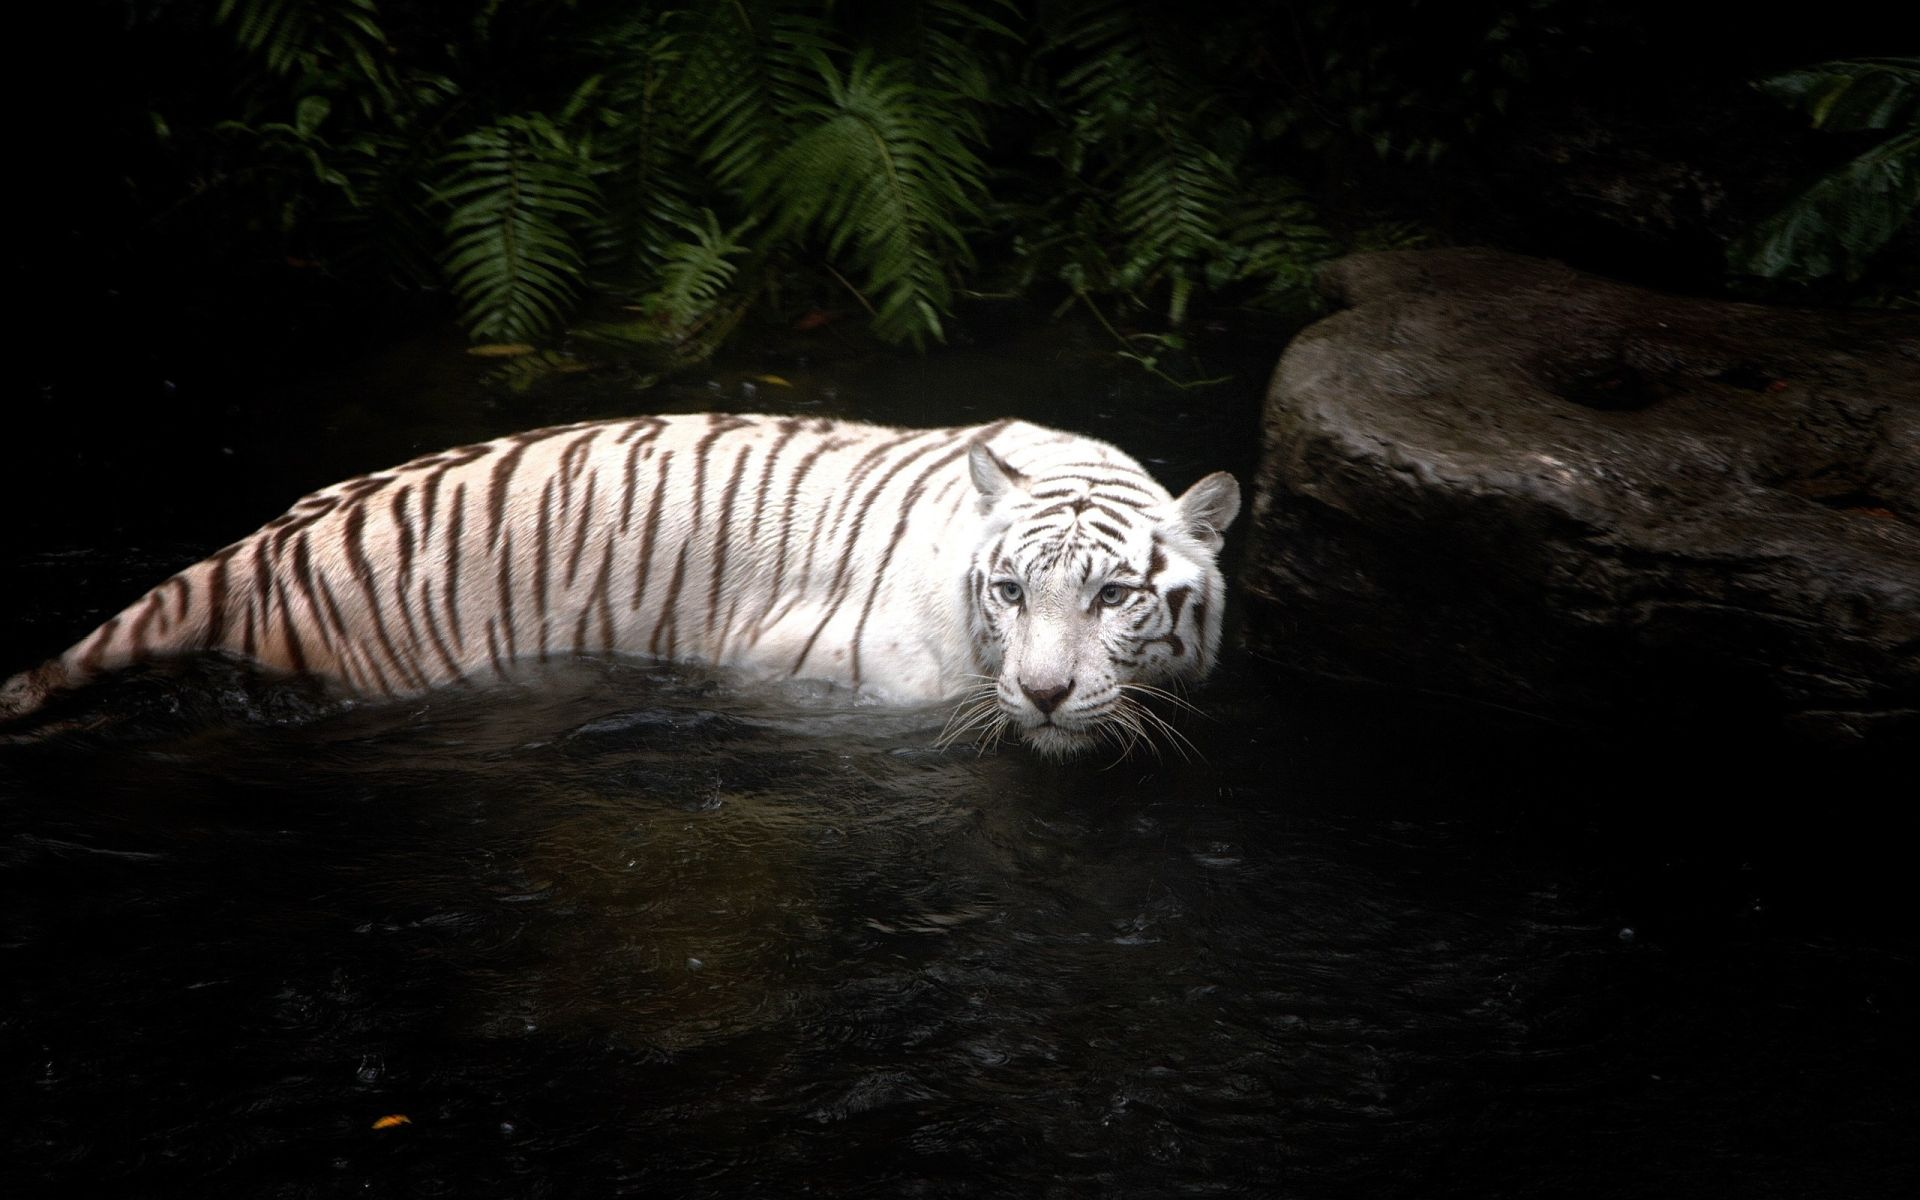 White Tiger stands in water, Image